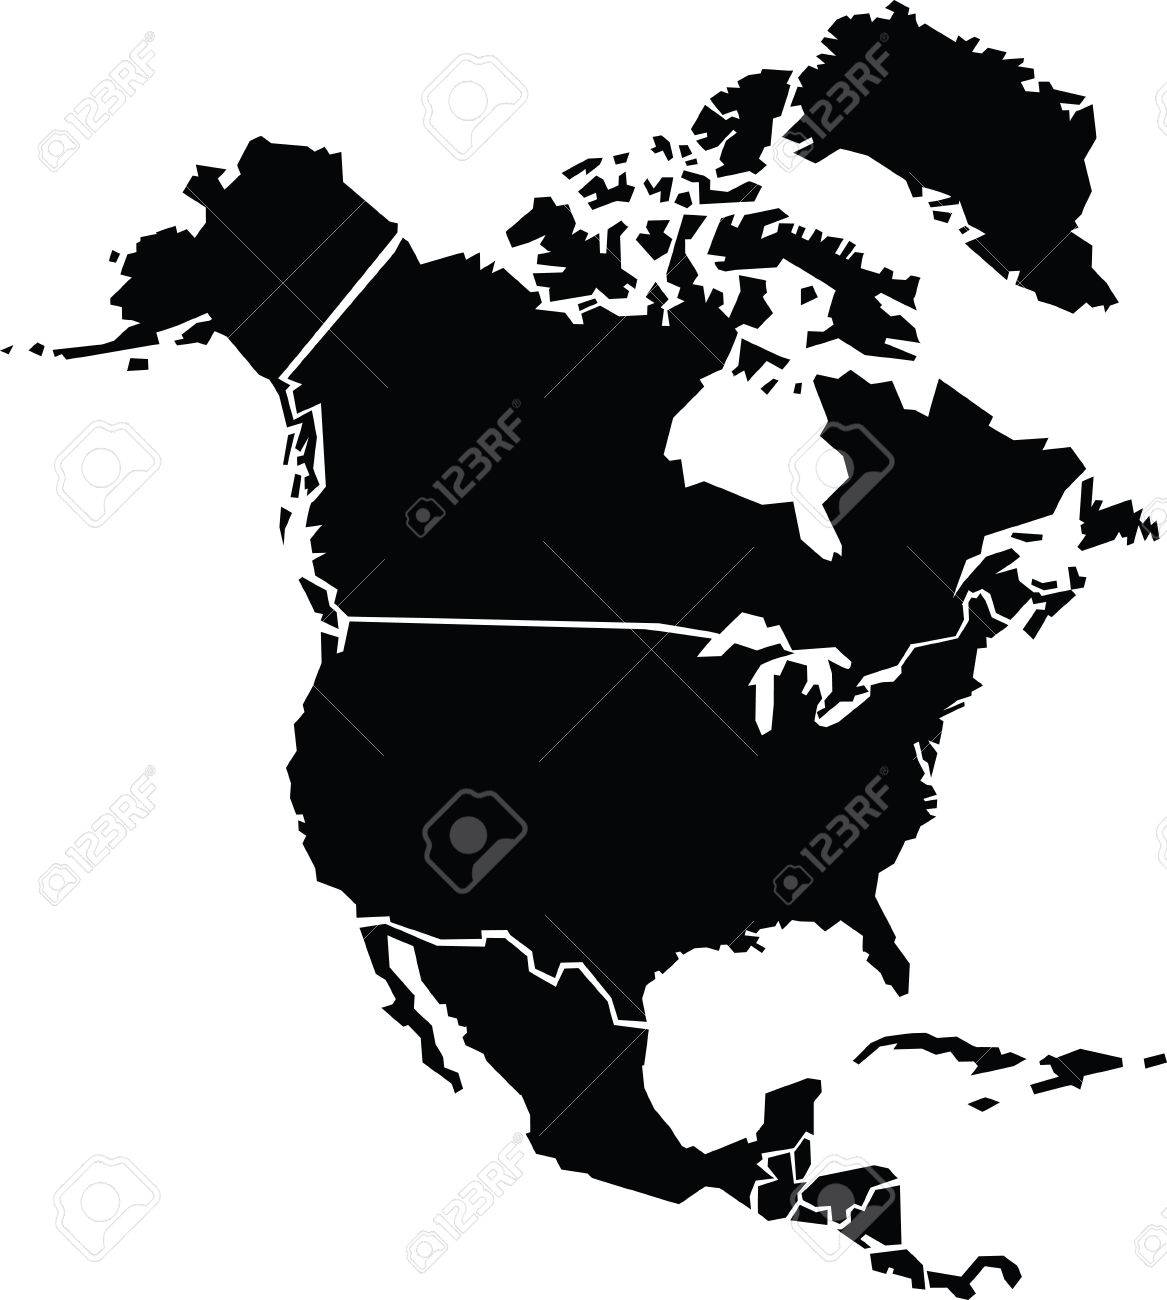 Chunky cartoon map of north america royalty free cliparts vectors chunky cartoon map of north america stock vector 29634421 gumiabroncs Choice Image